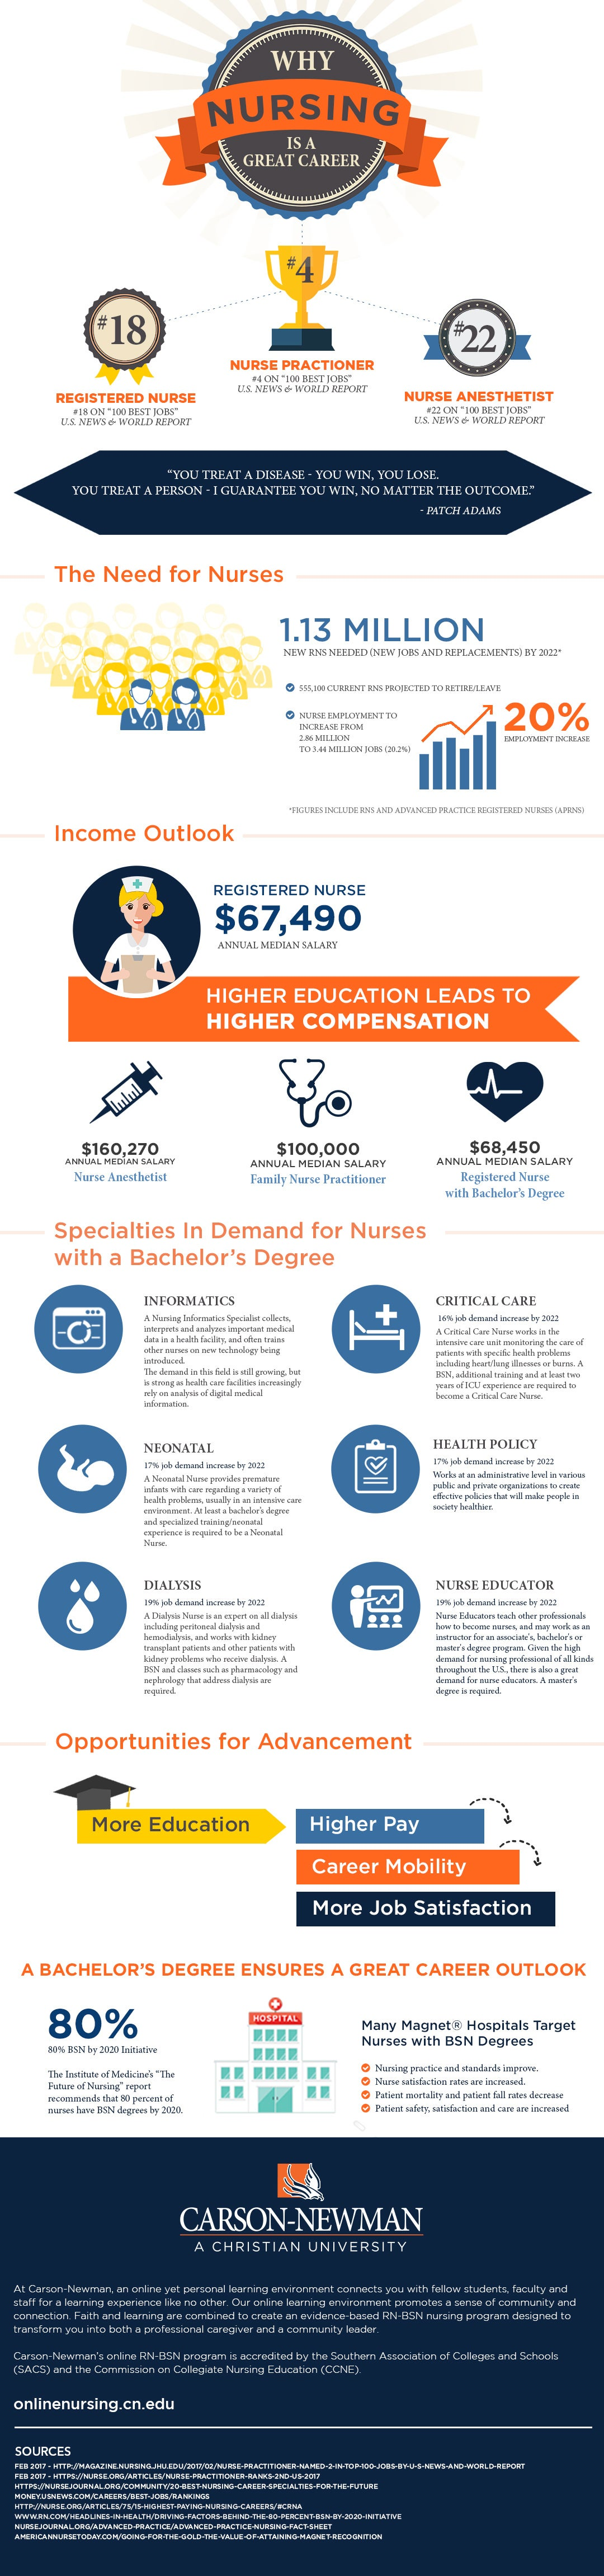 carson newman nursing is best infographic 0